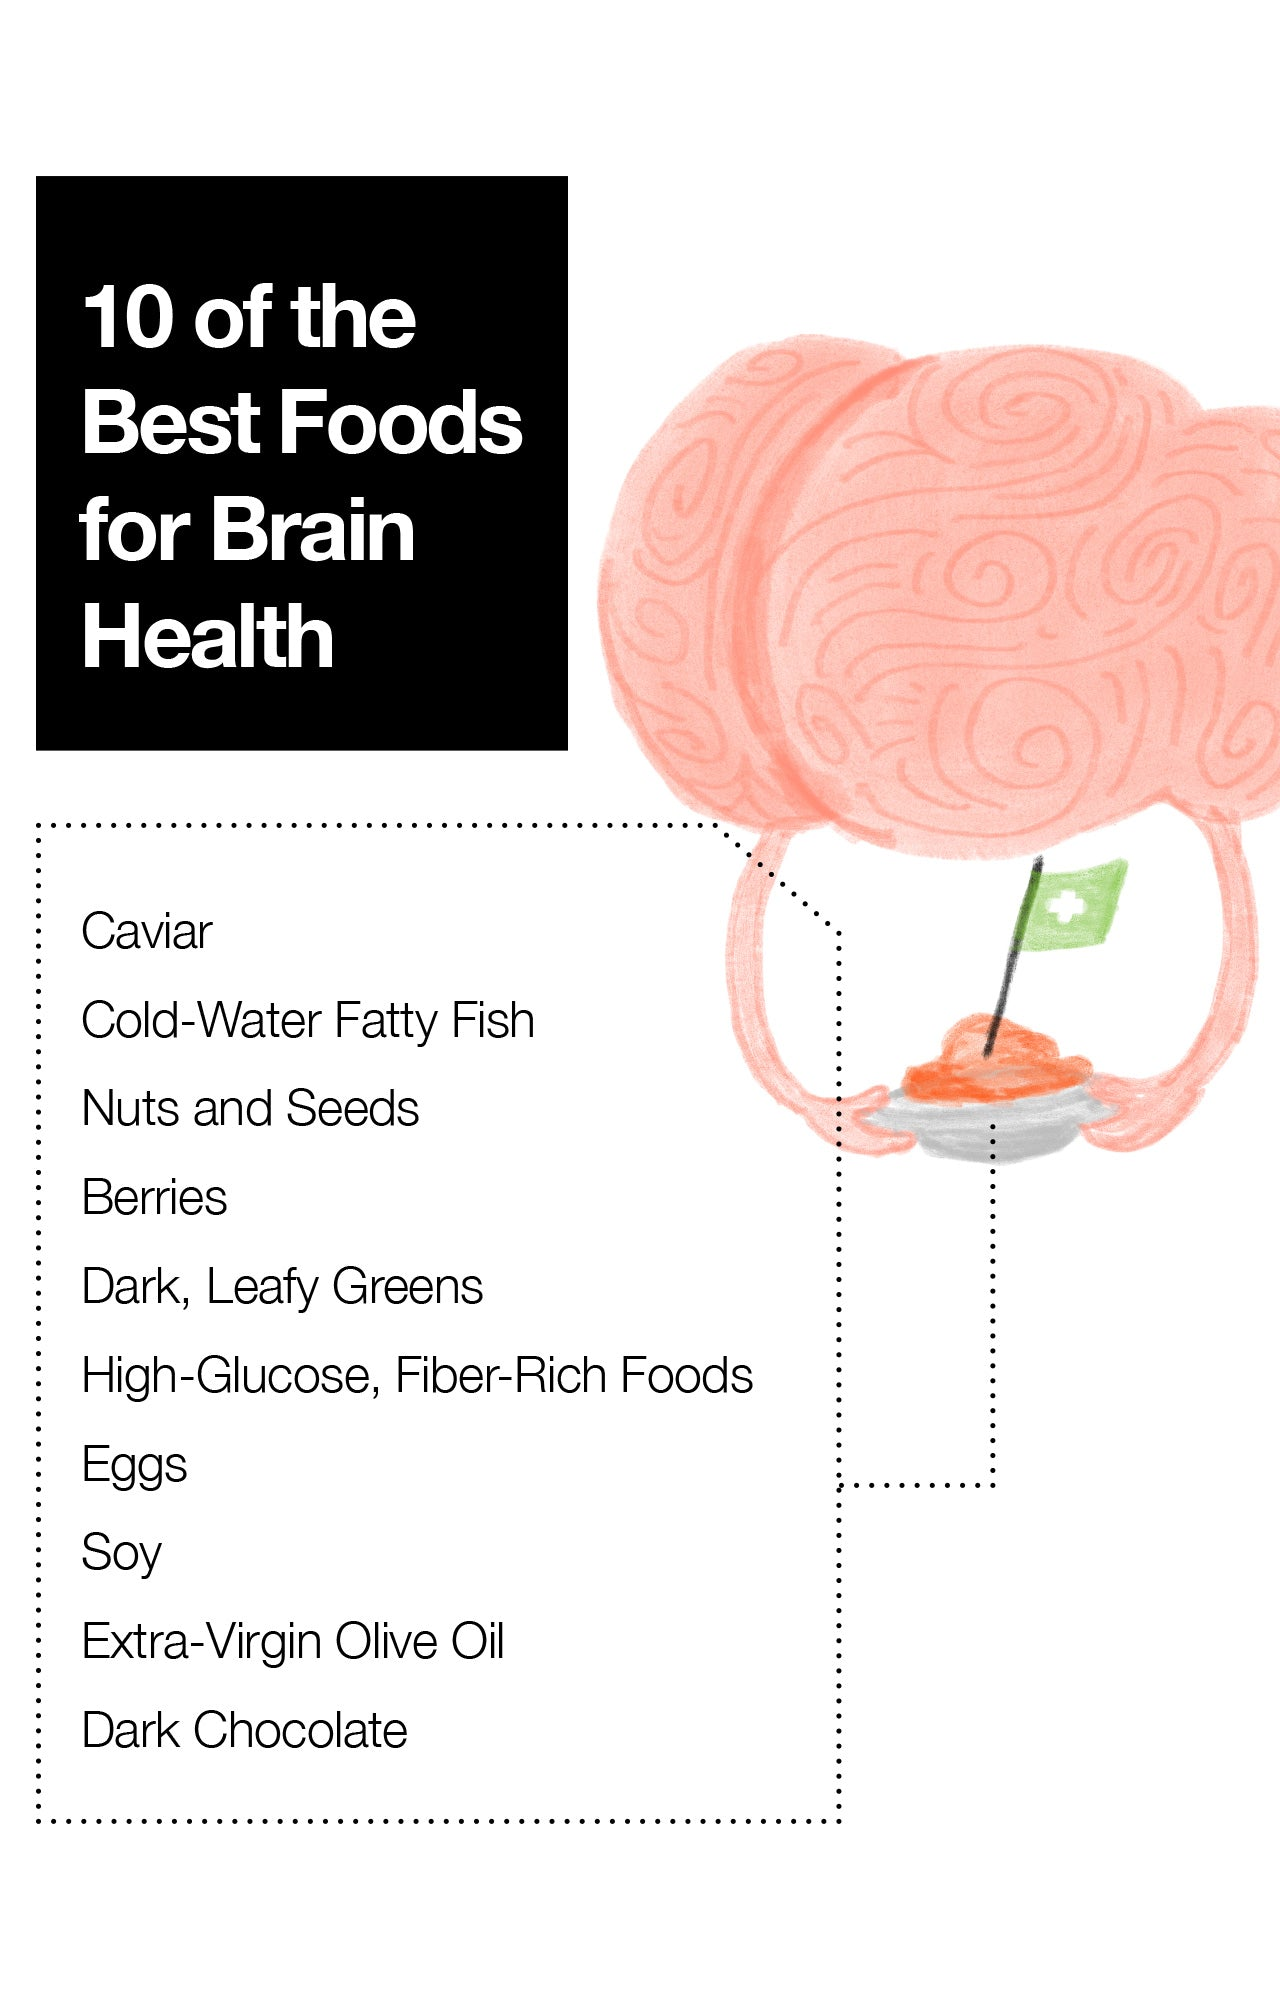 10 of the Best Foods for Brain Health